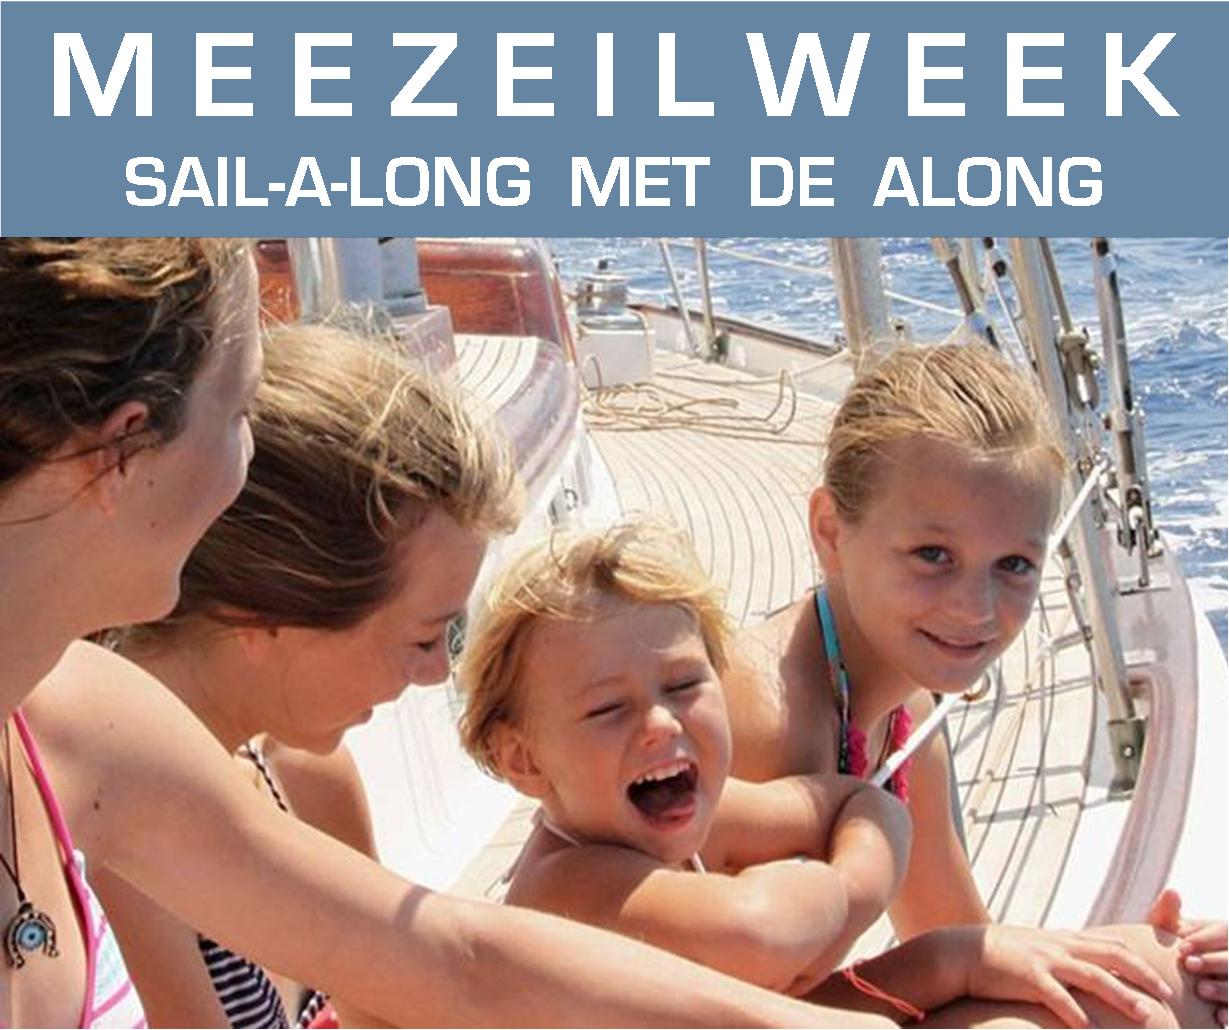 Mee zeilen met de Along | Sail-a-long with the Along | Sail in Greece Rhodes | sail-in-greece.net